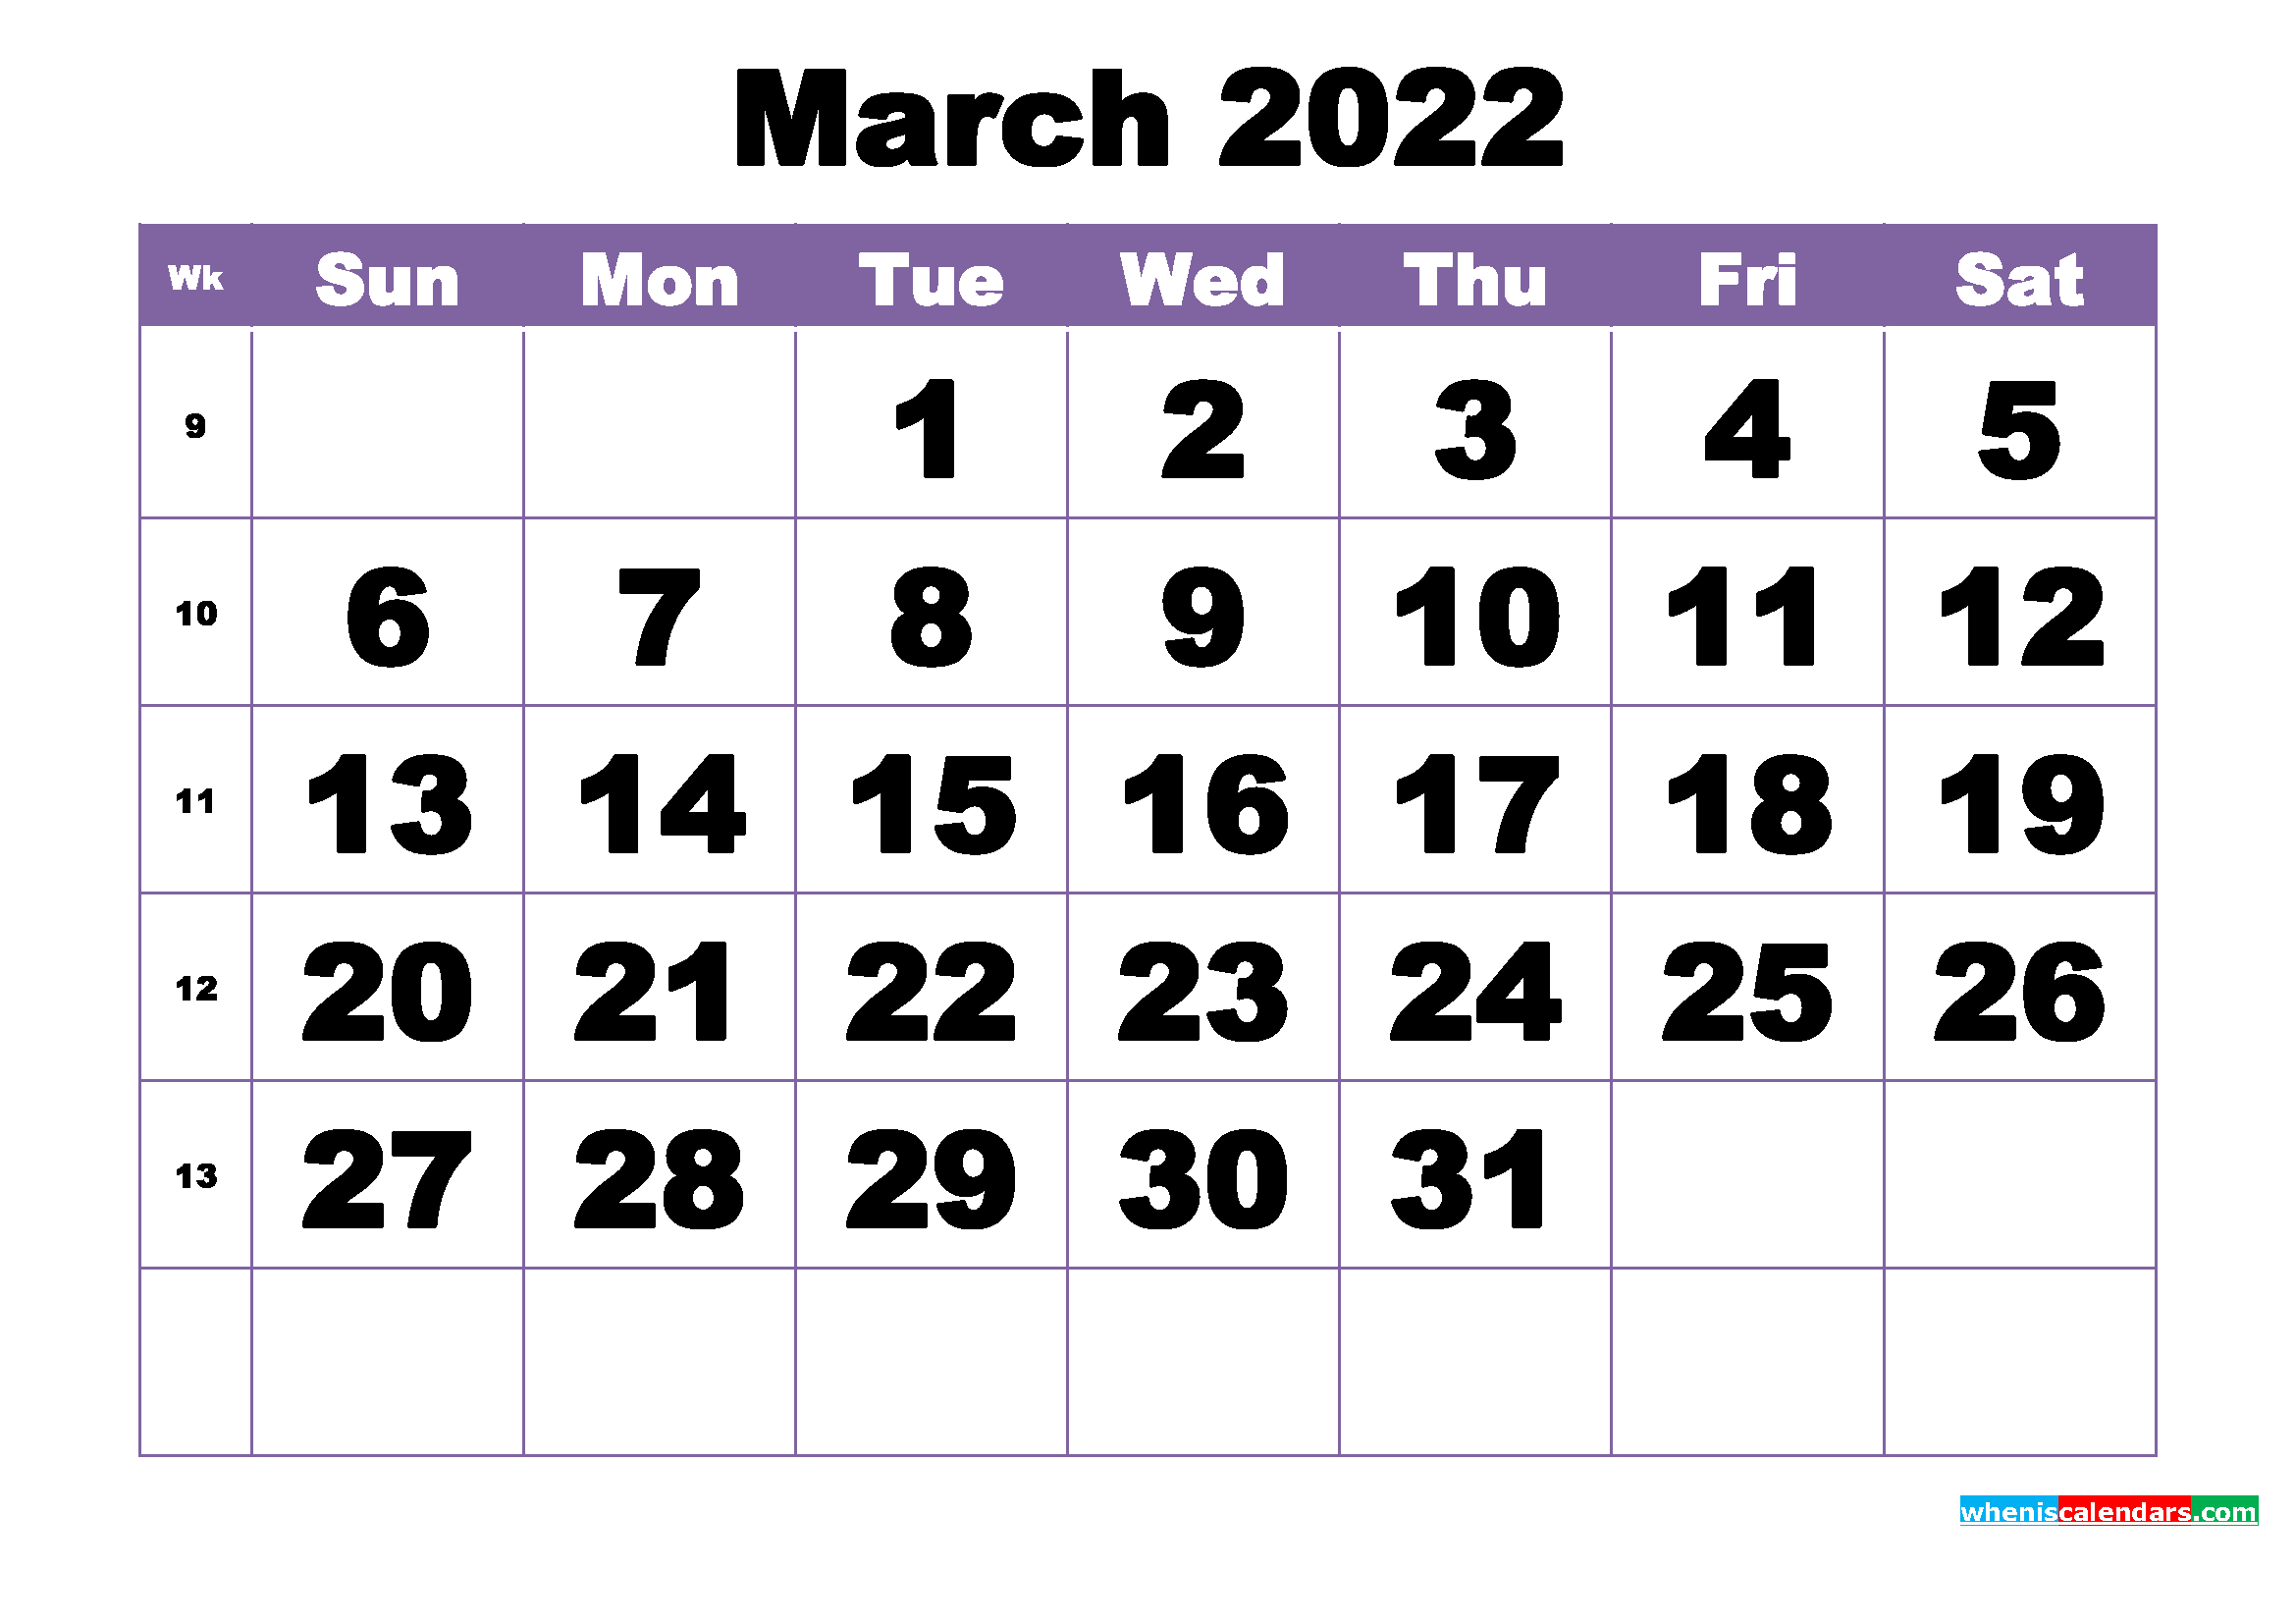 March 2022 Printable Calendar Template - Free Printable in 2022 2022 Monthly Planner Free Printable